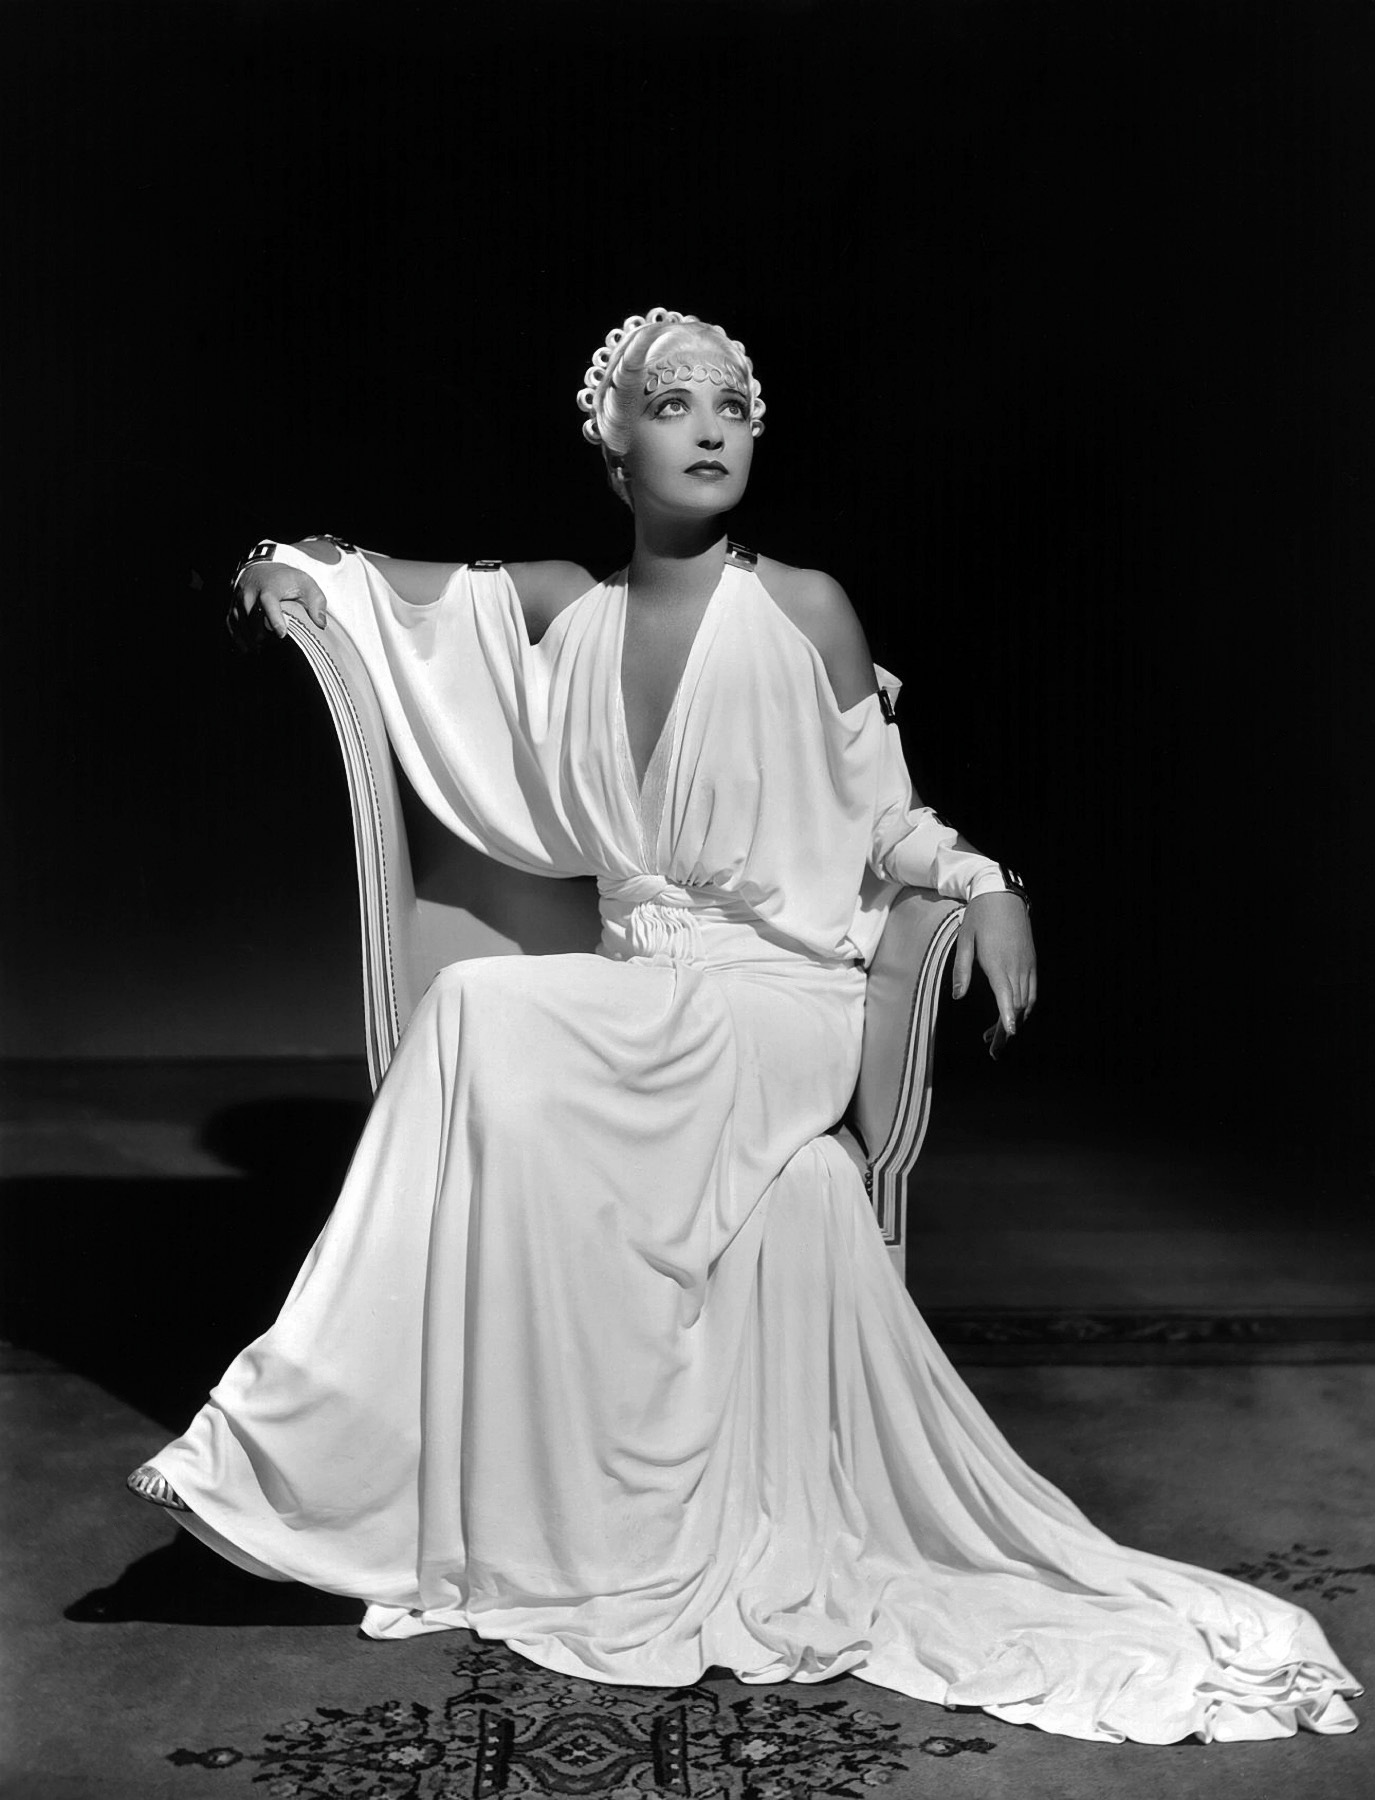 Not totally sure who this is. I thought Bette Davis, but maybe Dolores del Rio in a blonde wig? Either way, this dress is  killer .